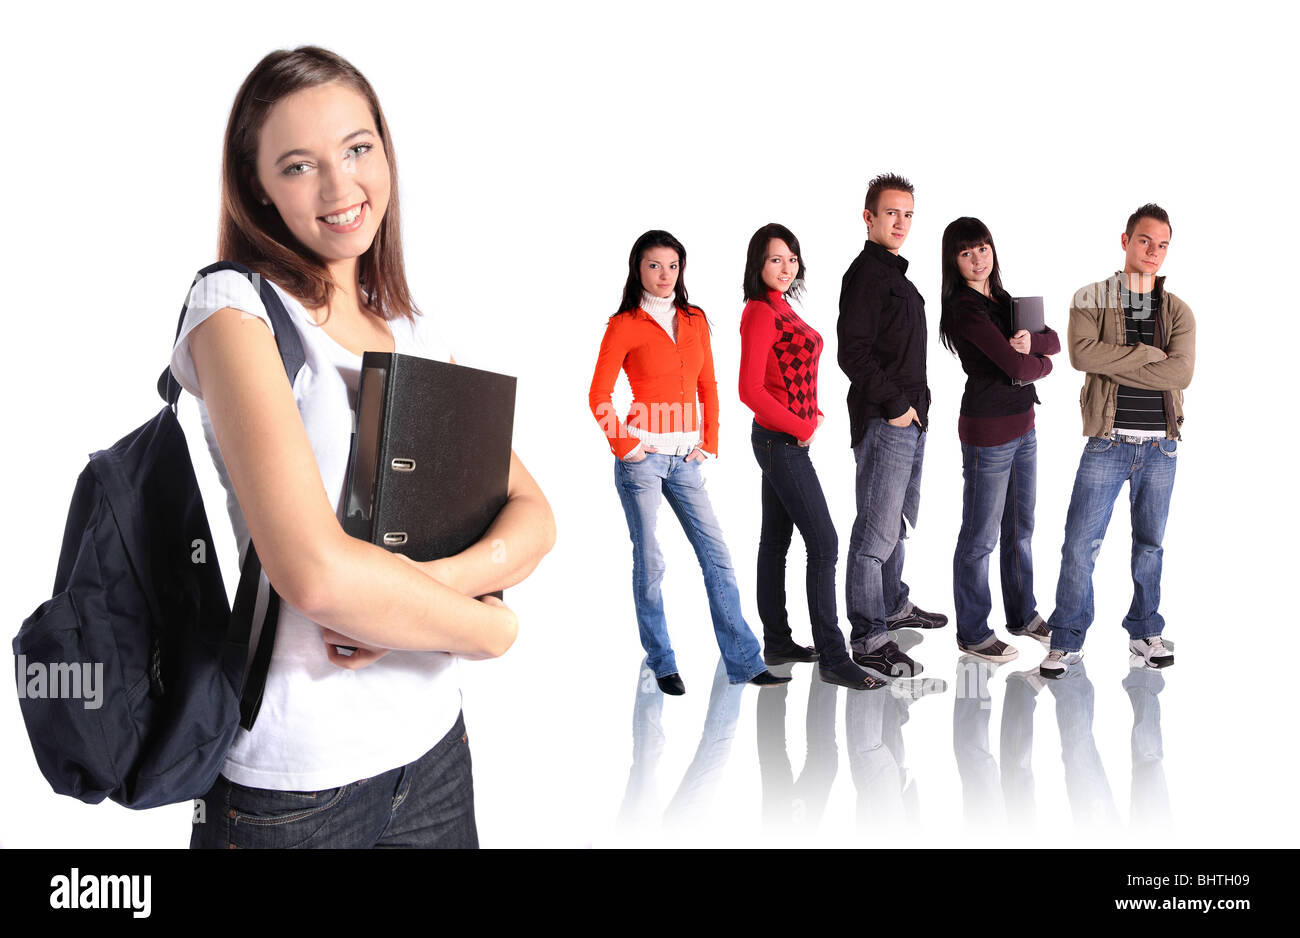 A group of ambitious students standing in front of a plain white ebackground. - Stock Image